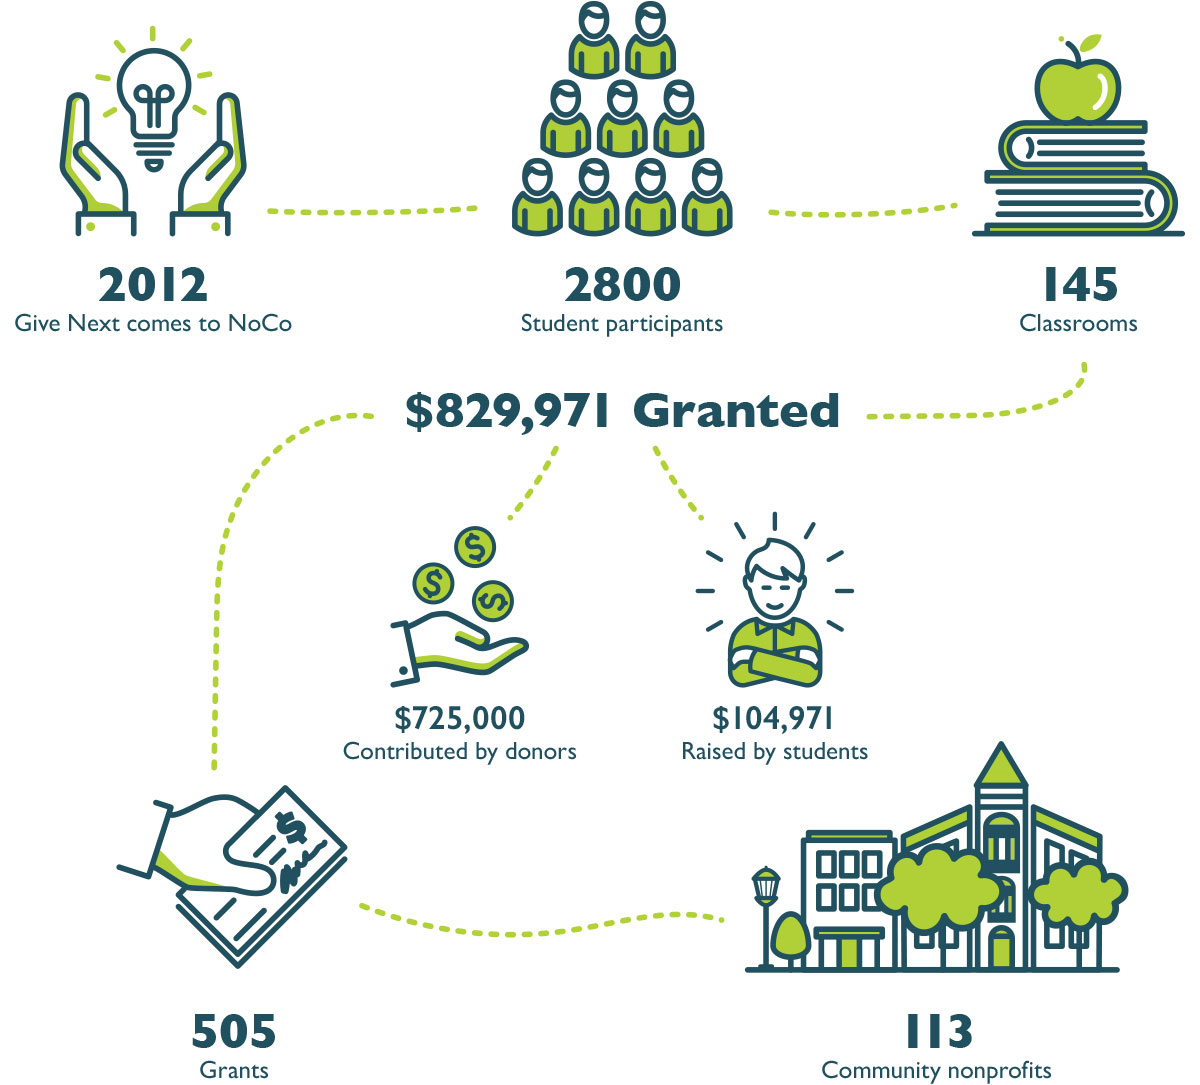 [Infographic] Give Next At A Glance